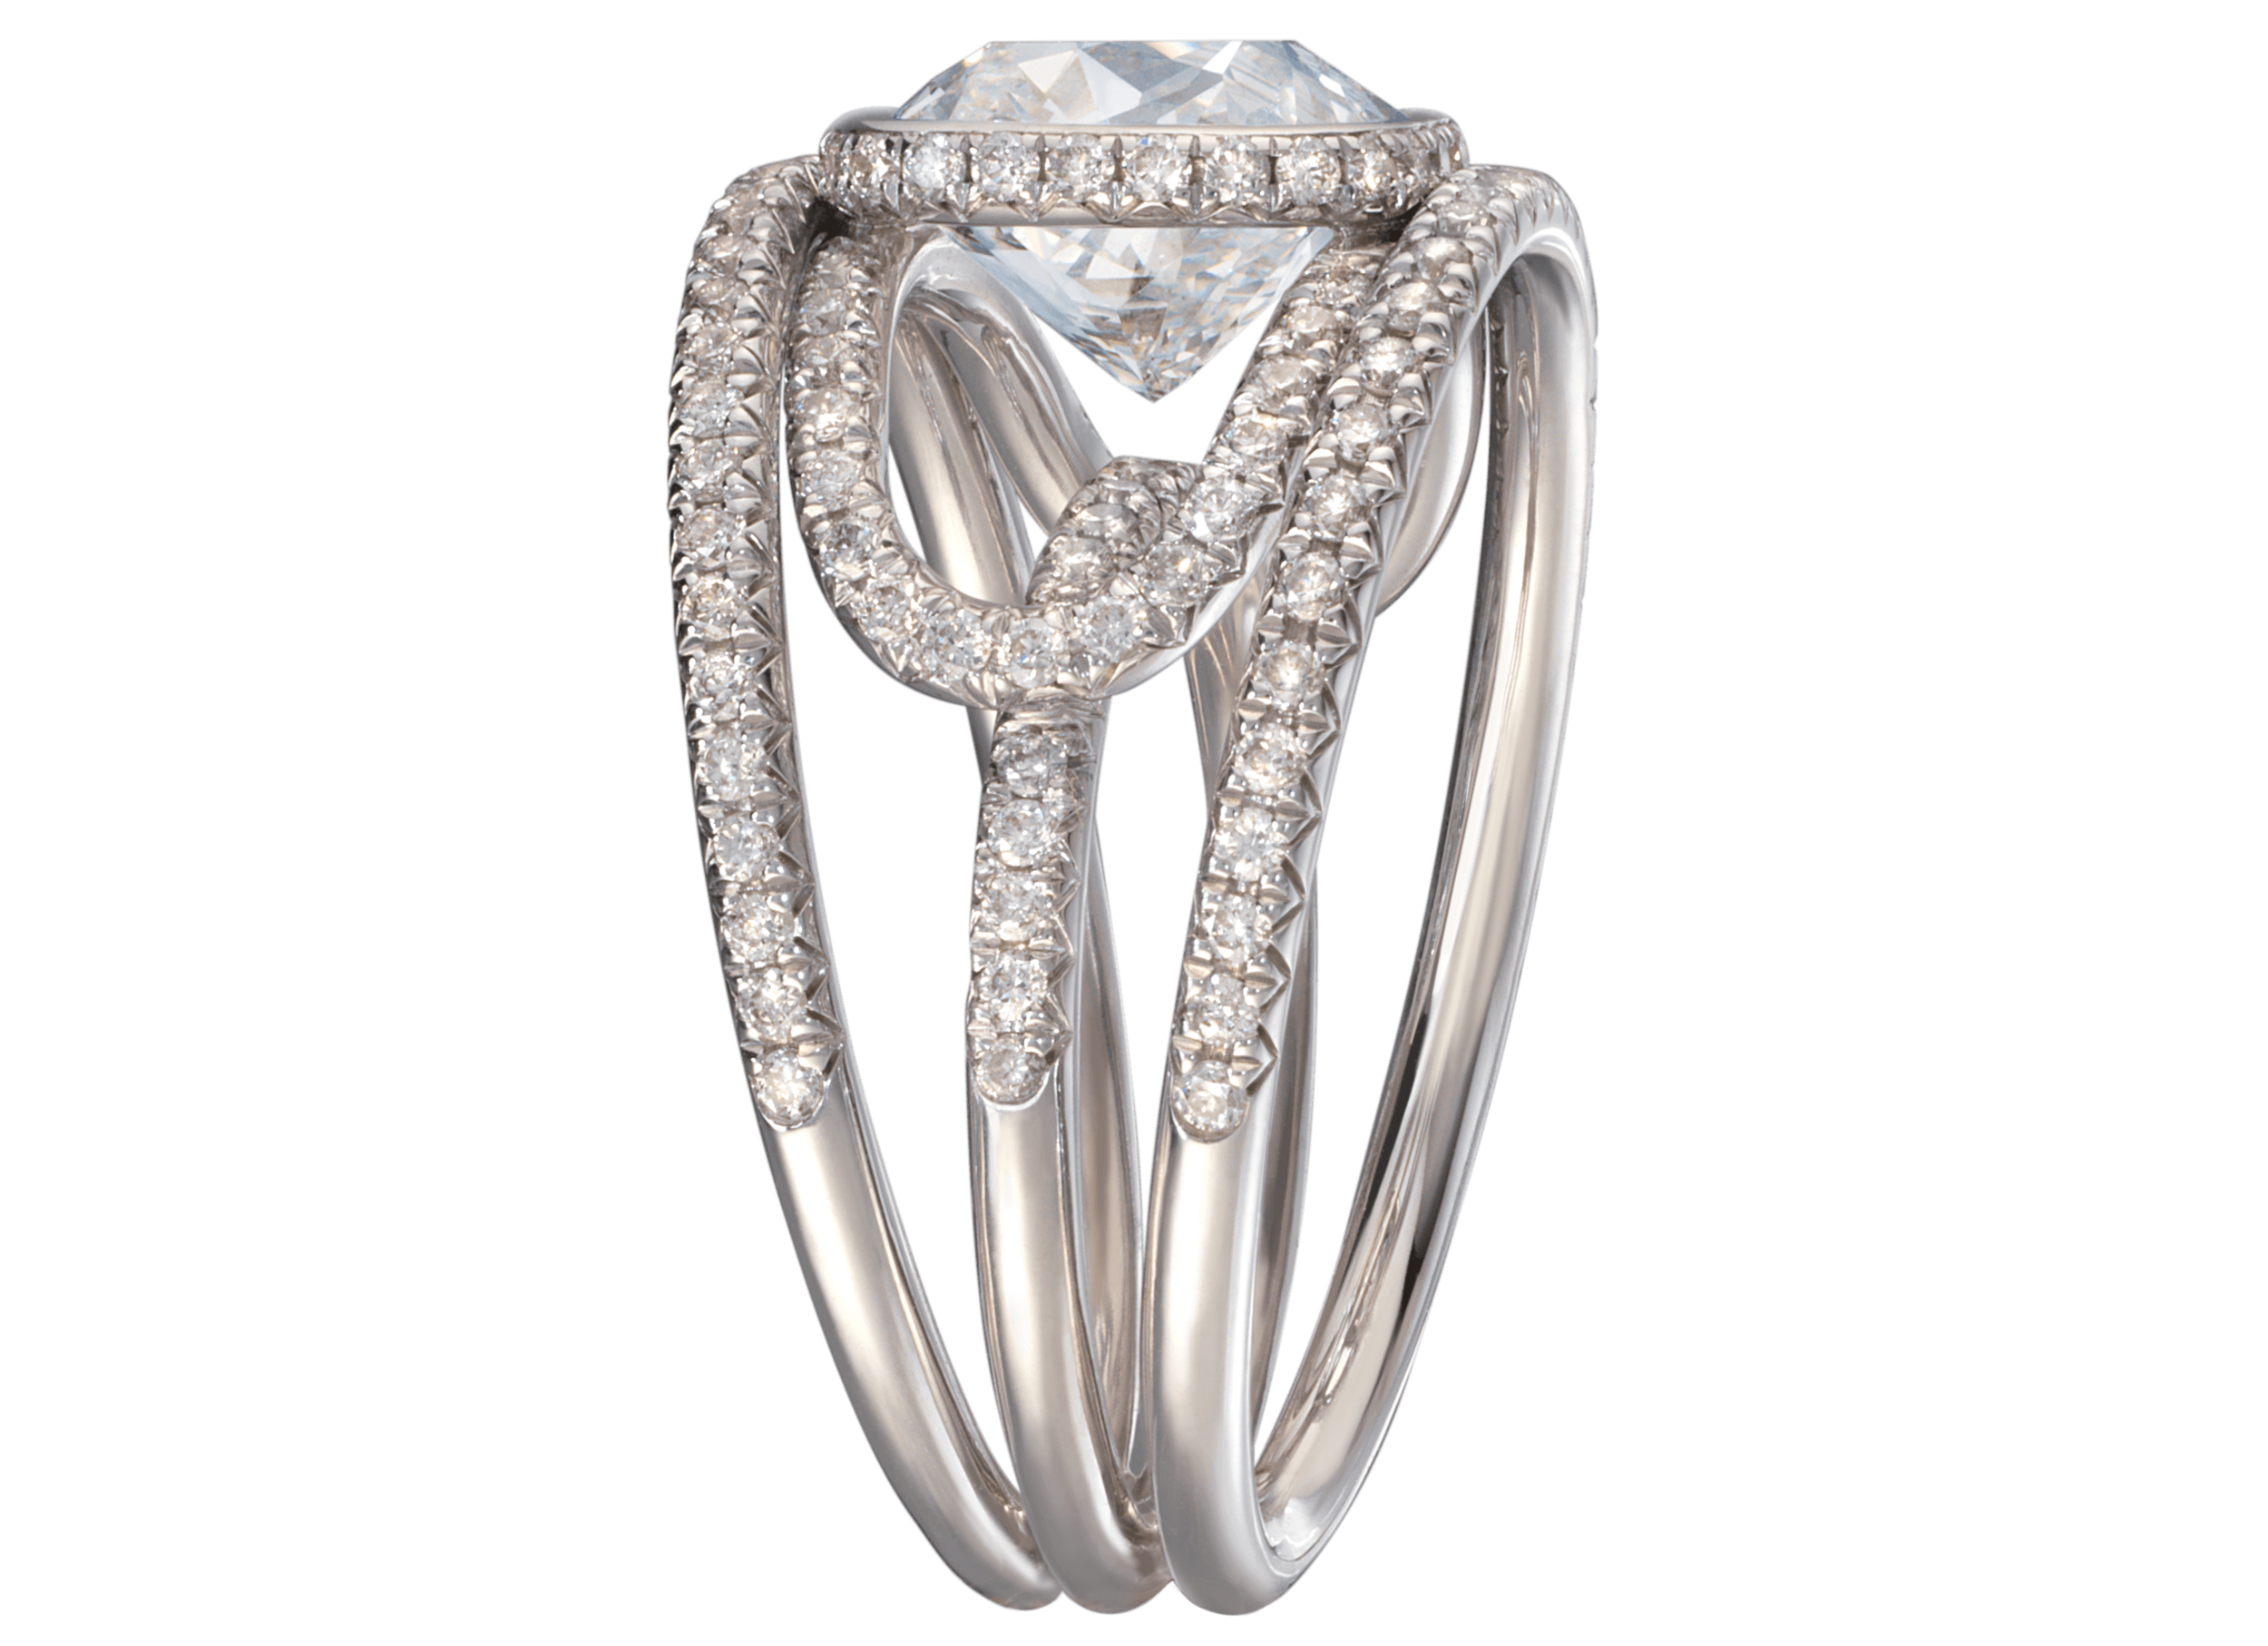 Bague Navona - Or blanc diamant coussin 3 carats pavage complet